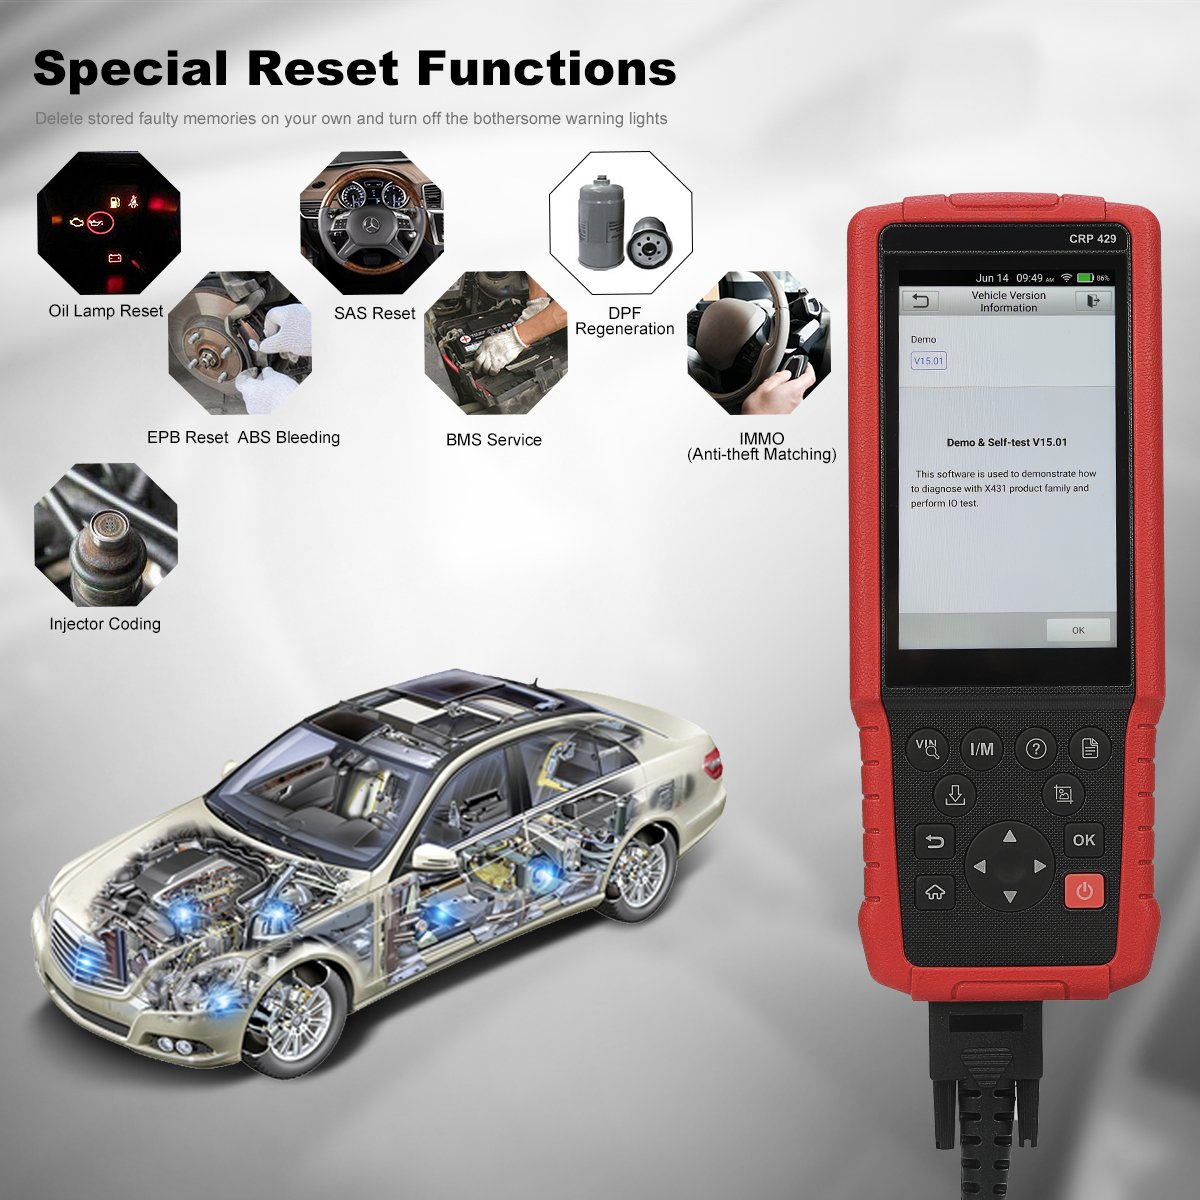 LAUNCH CRP429 All System OBD2 Diagnostic Scan Tool with ABS SRS Airbag Oil Reset EPB BMS SAS DPF Injector Coding and IMMO + TPMS Activation Tool Gift by LAUNCH (Image #1)